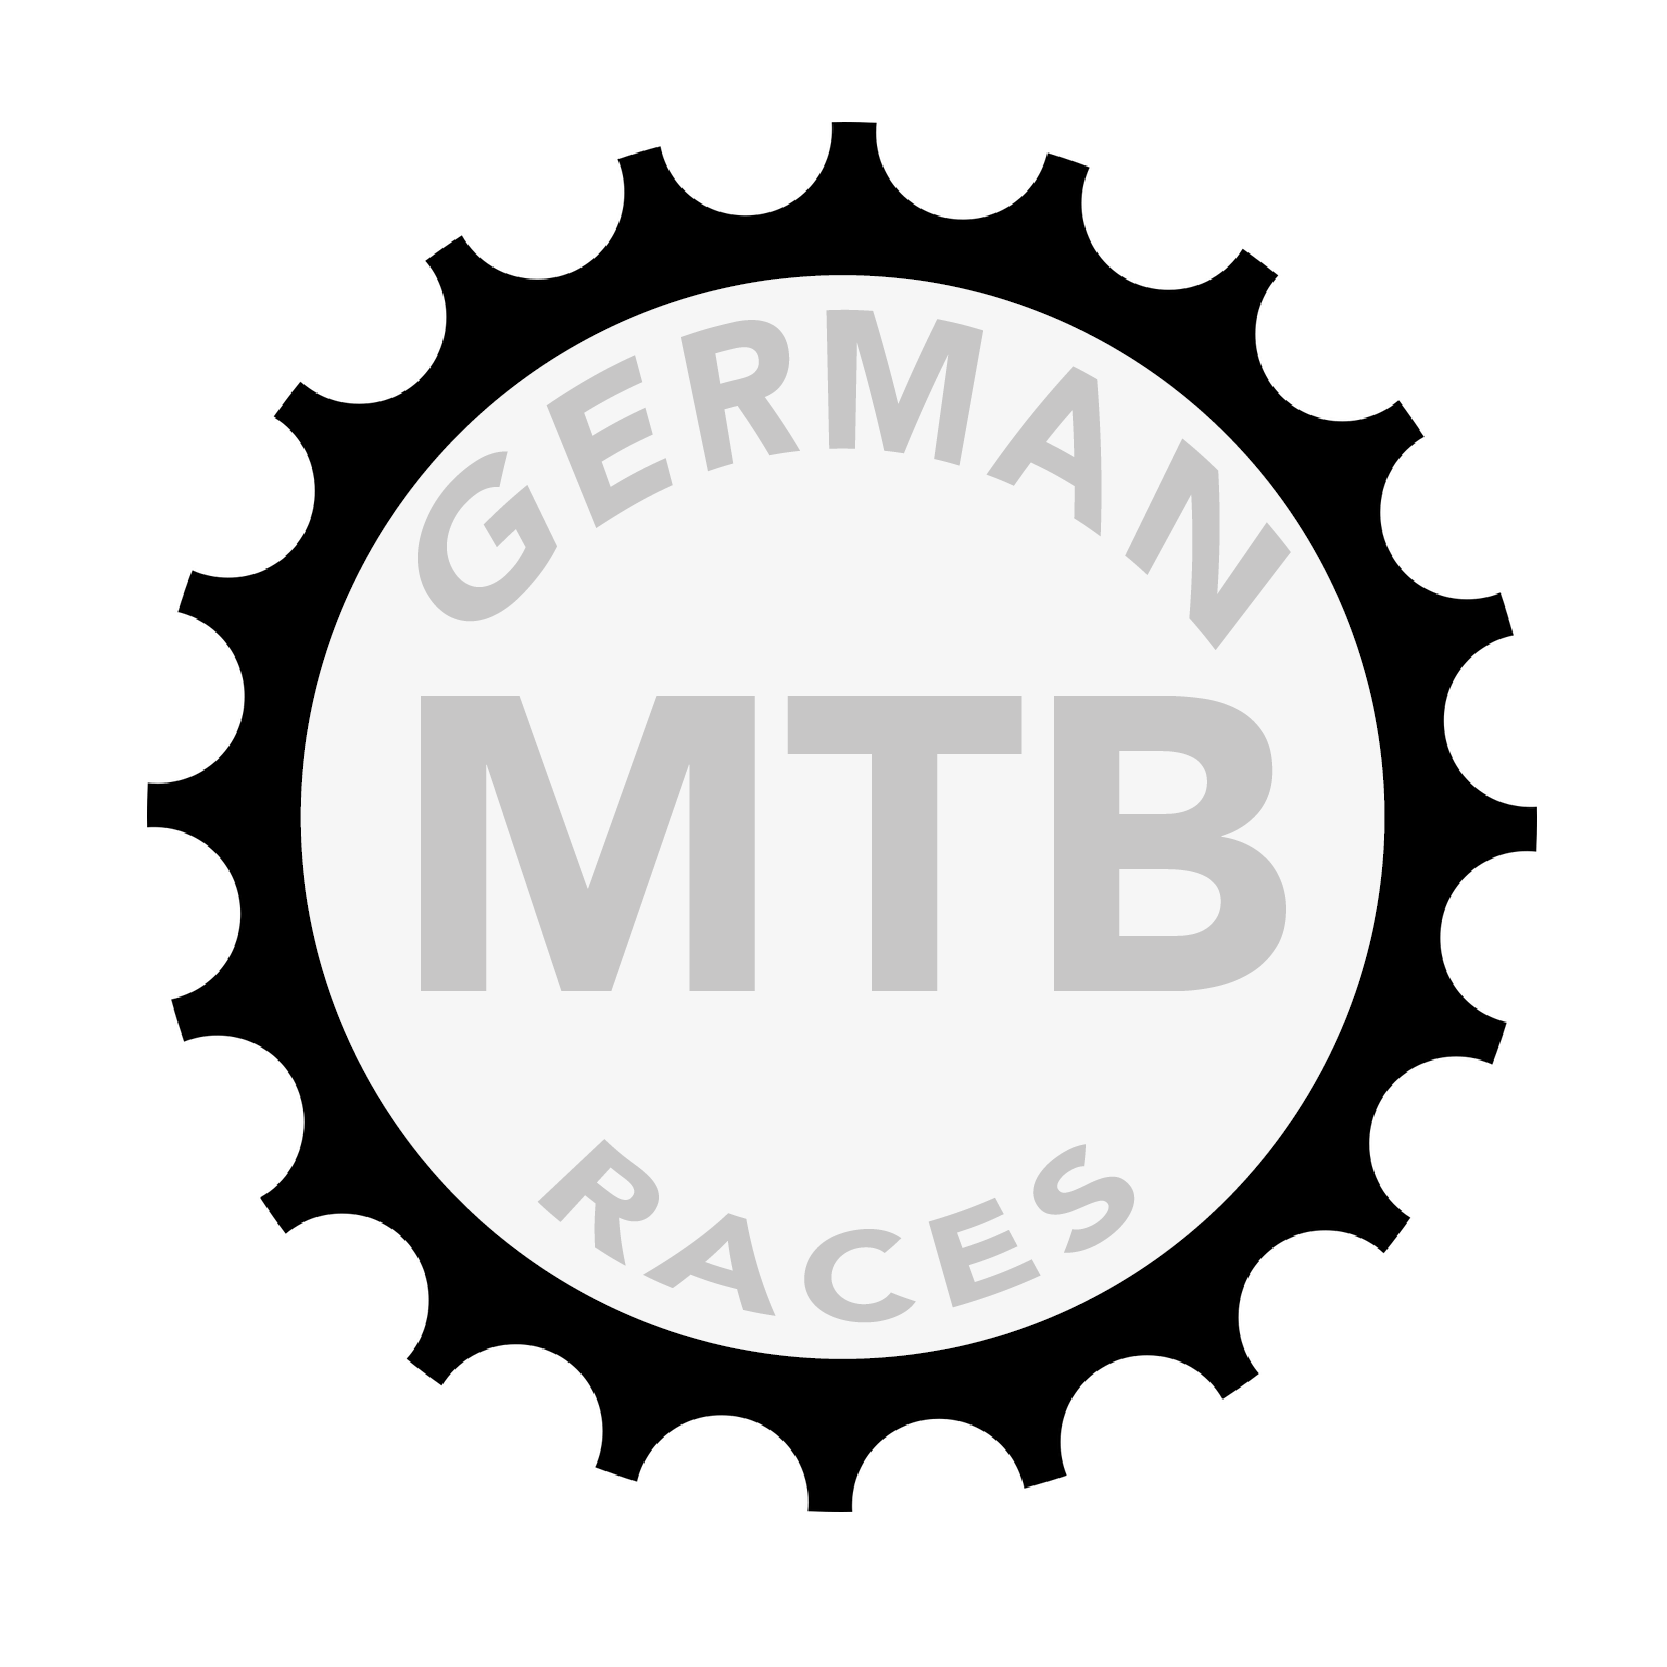 GERMAN MTB RACES